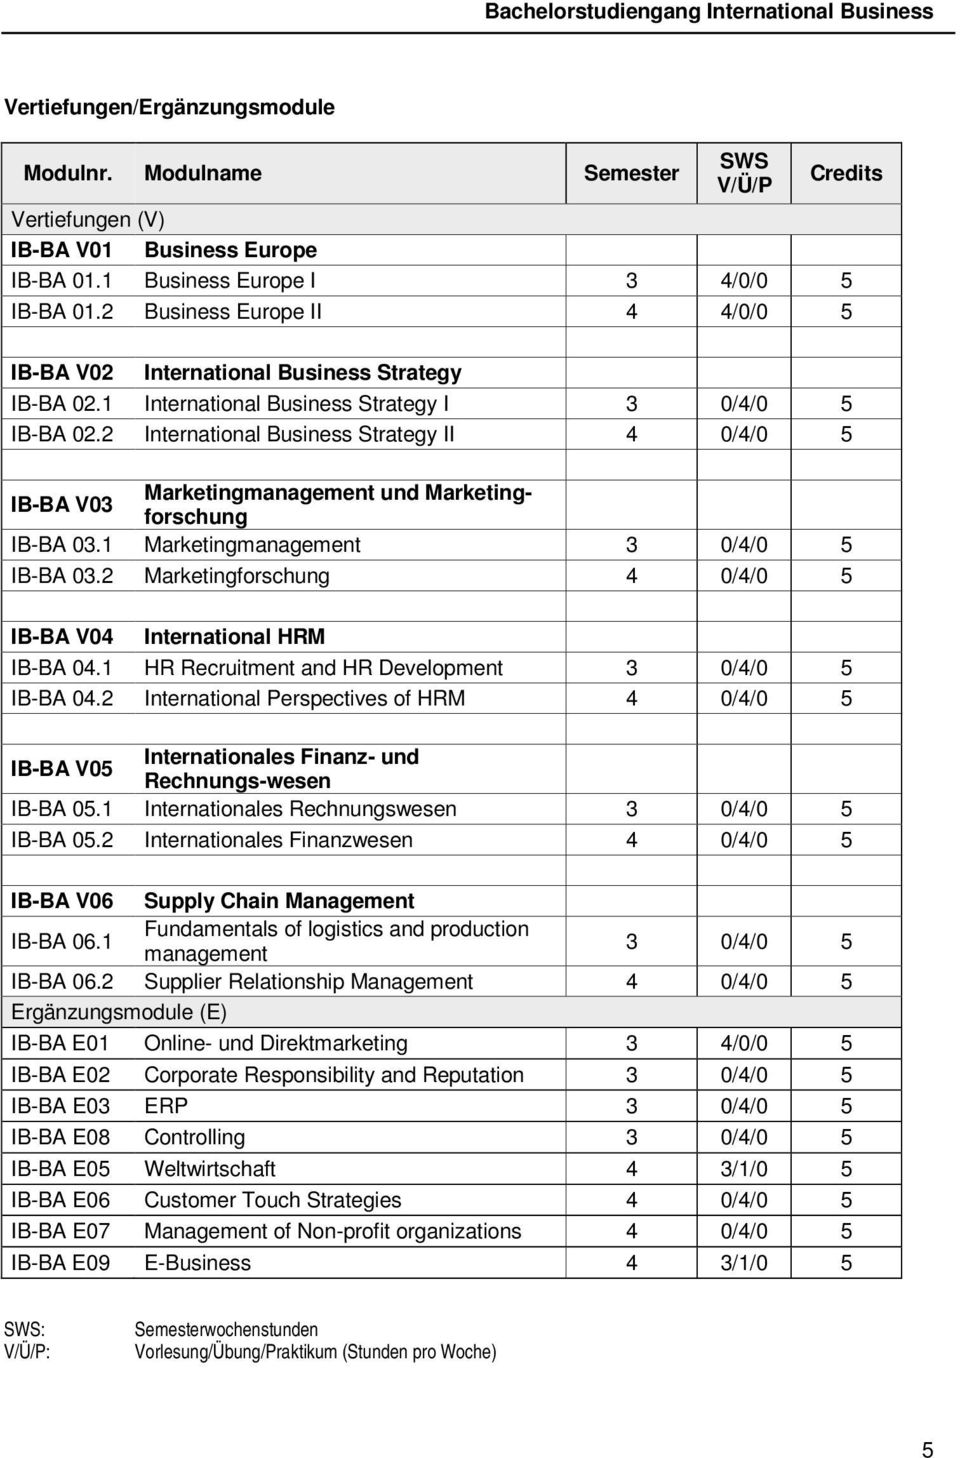 2 International Business Strategy II 4 0/4/0 5 IB-BA V03 Marketingmanagement und Marketingforschung IB-BA 03.1 Marketingmanagement 3 0/4/0 5 IB-BA 03.